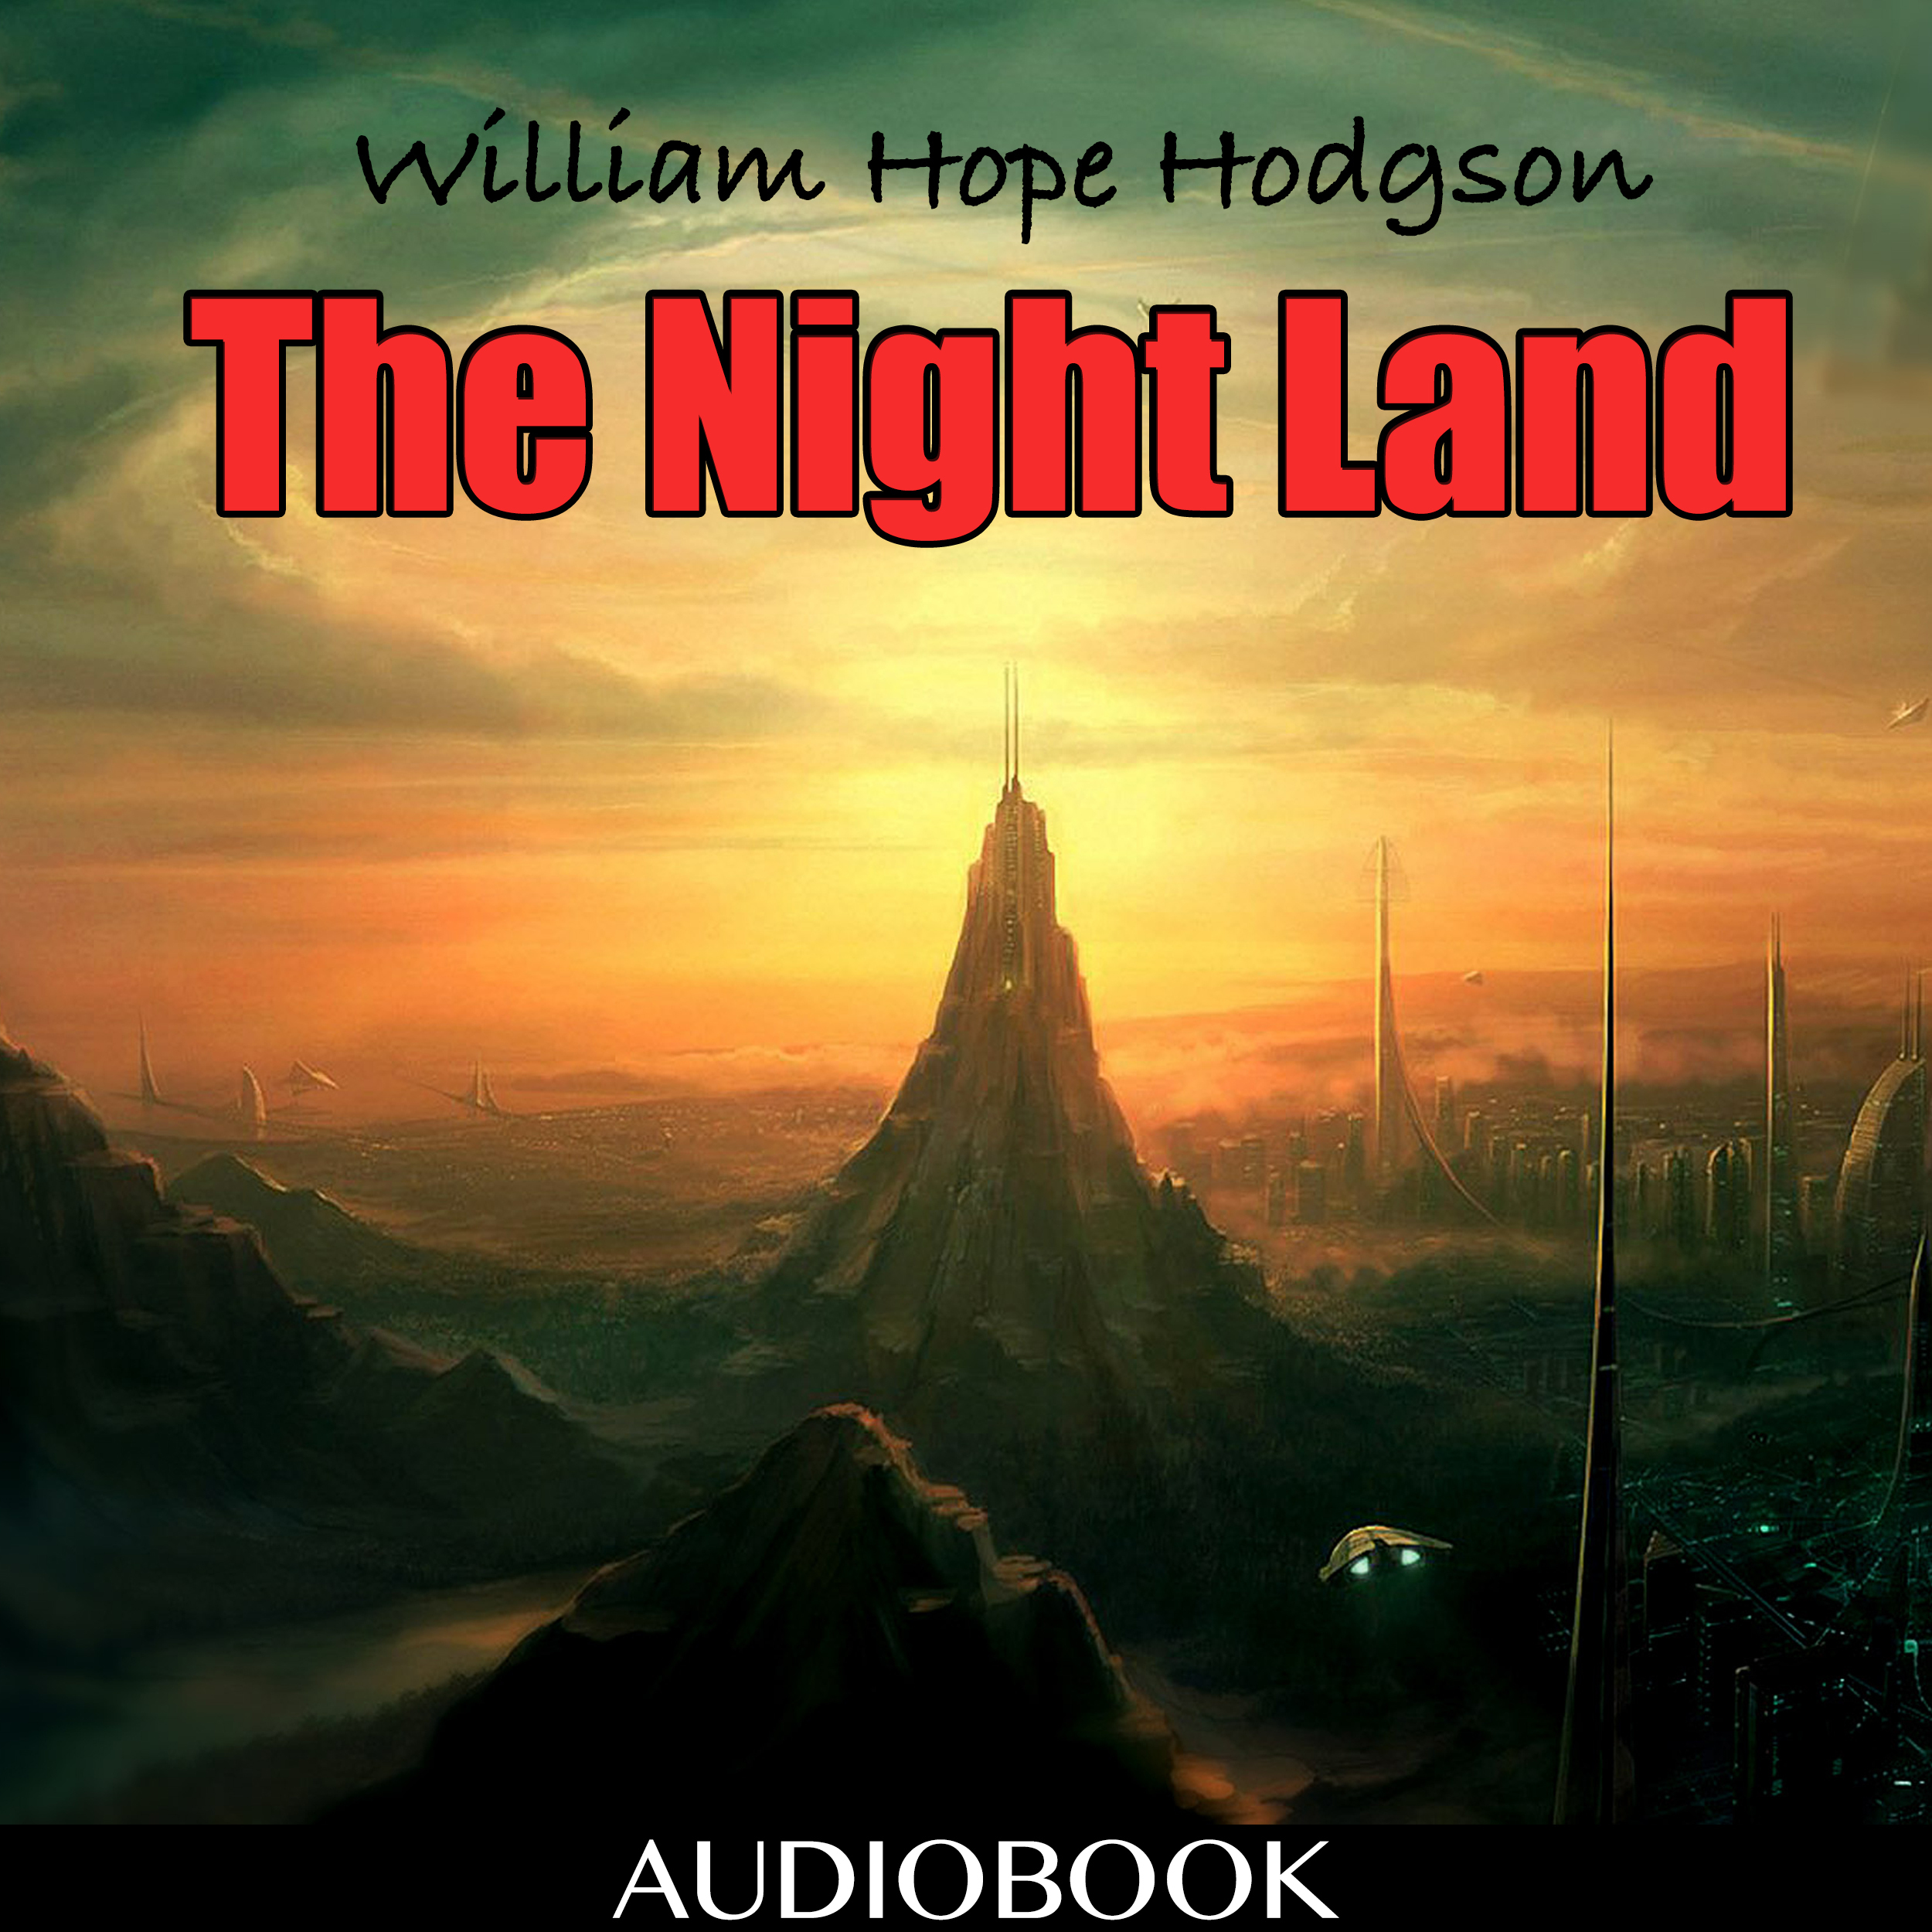 Publication: The Night Land